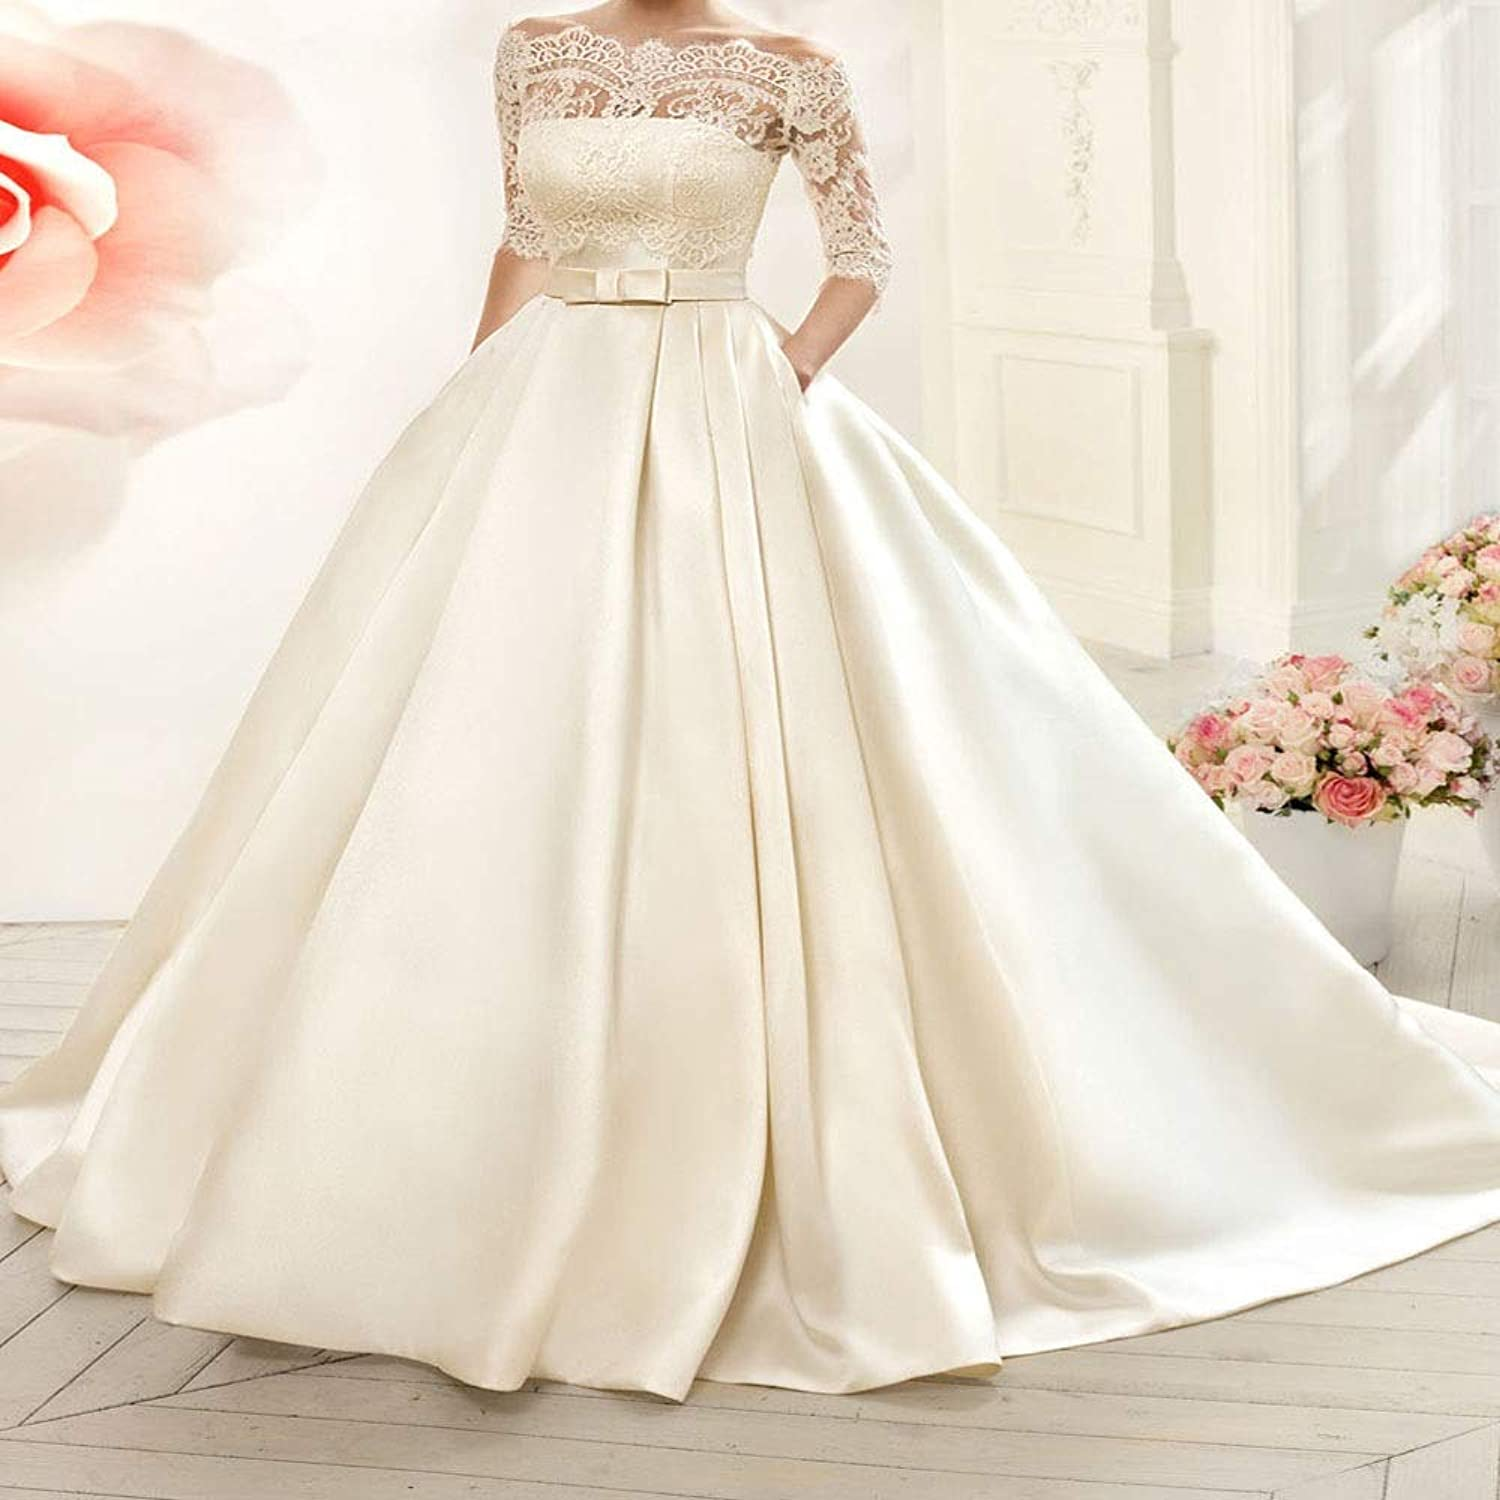 Women's Long Sleeves Wedding Dress Backless Lace Trailing Boat Neck Sweetheart Wedding